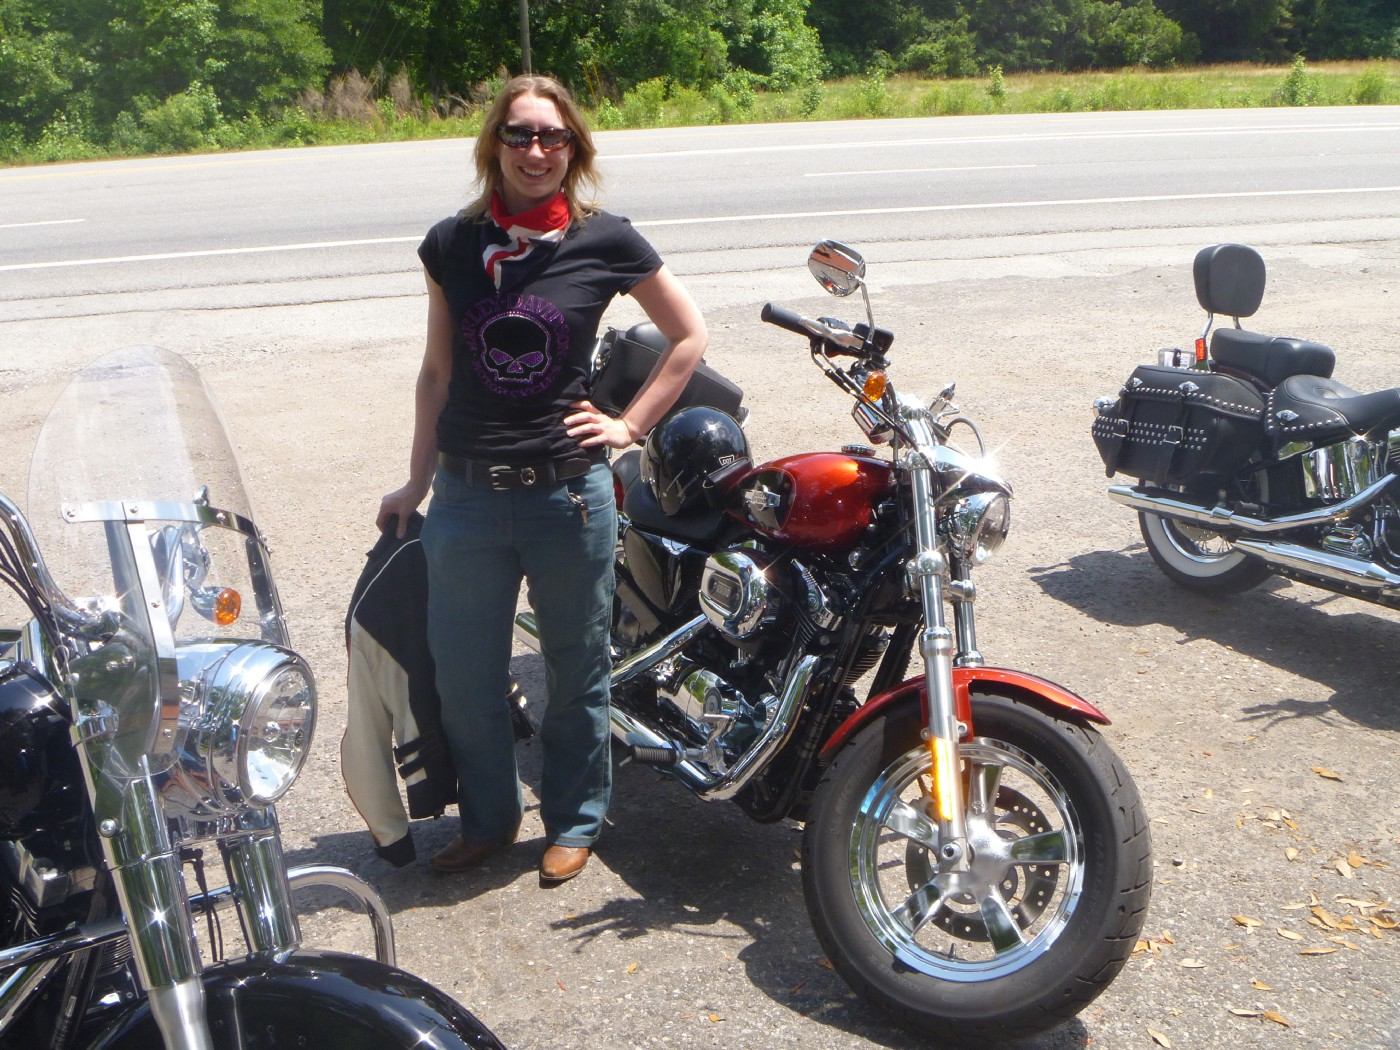 A woman stands in front of three motorbikes